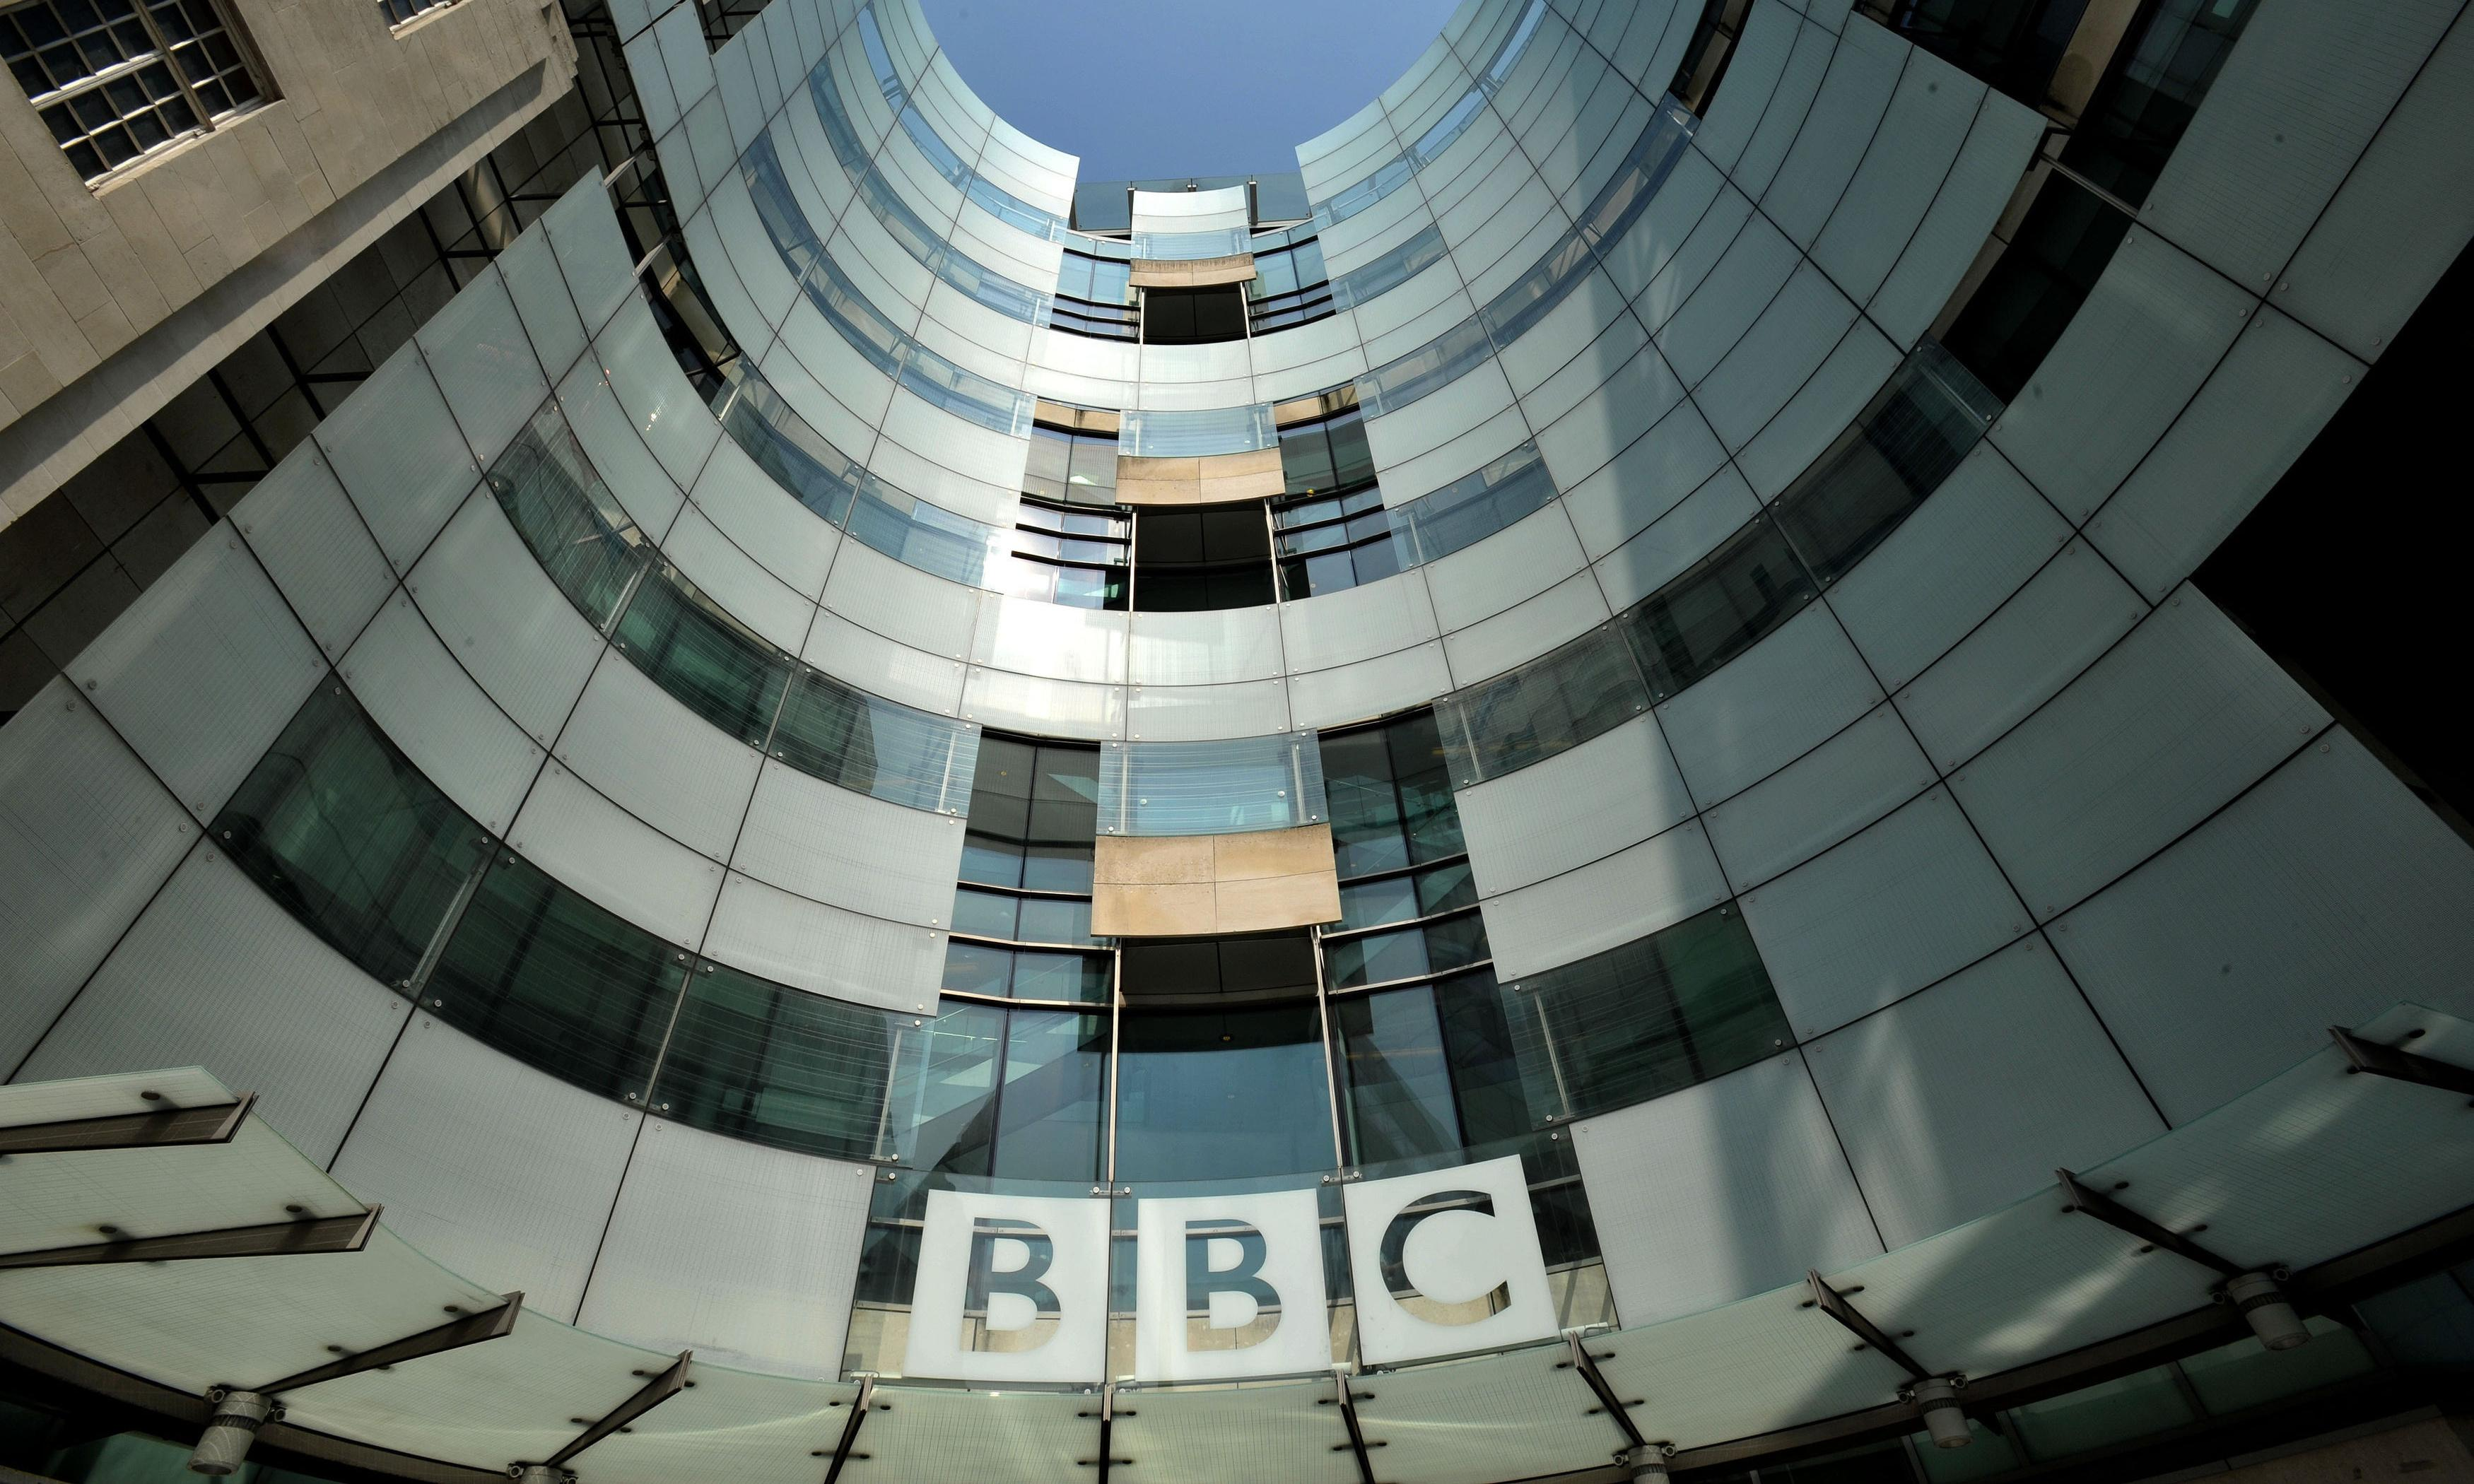 BBC has a key role in tackling the climate emergency